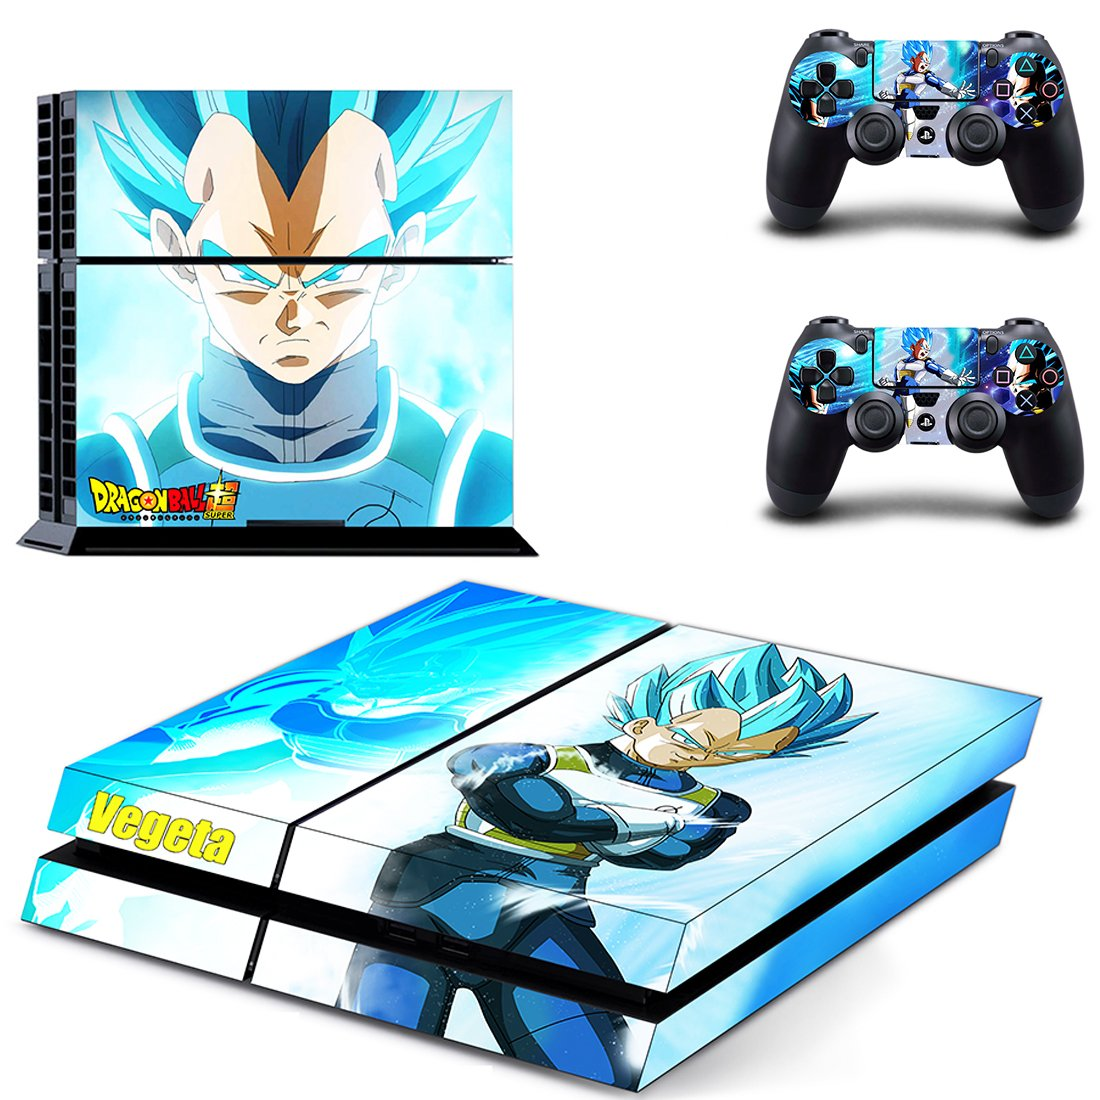 Dragon Ball PS4 Skin Sticker Wrap